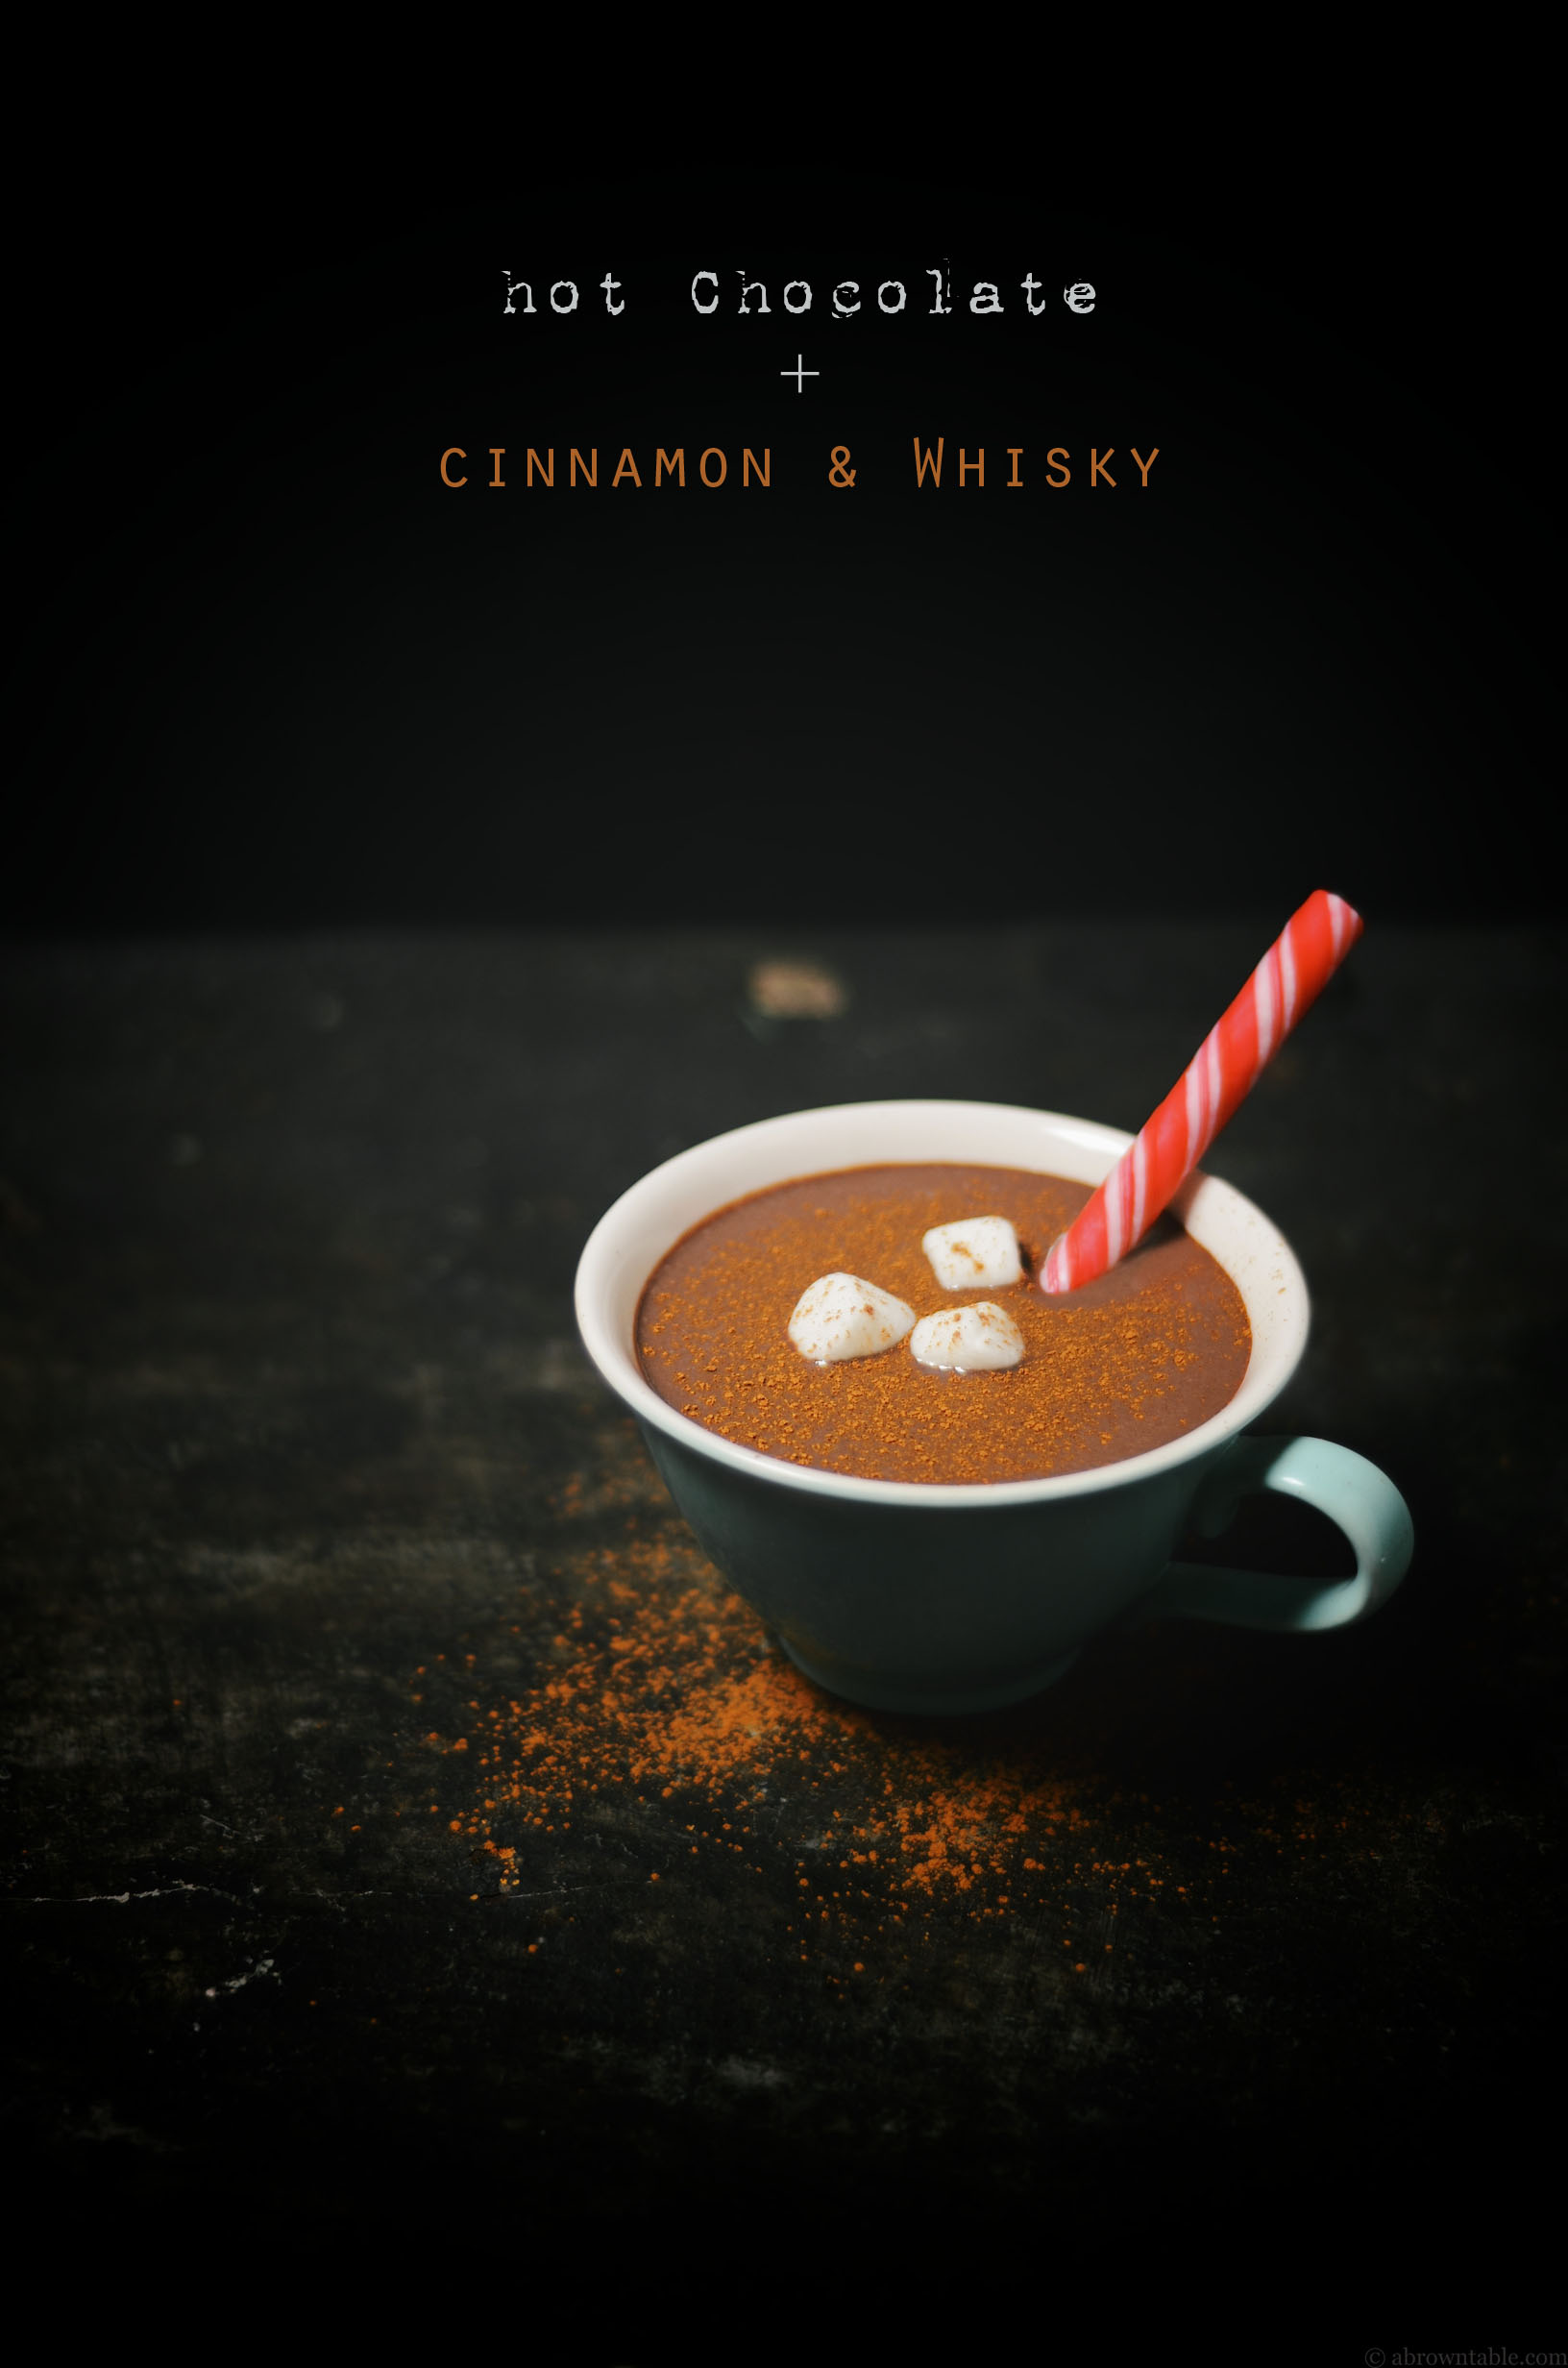 cinnamon spiced hot chocolate with whisky